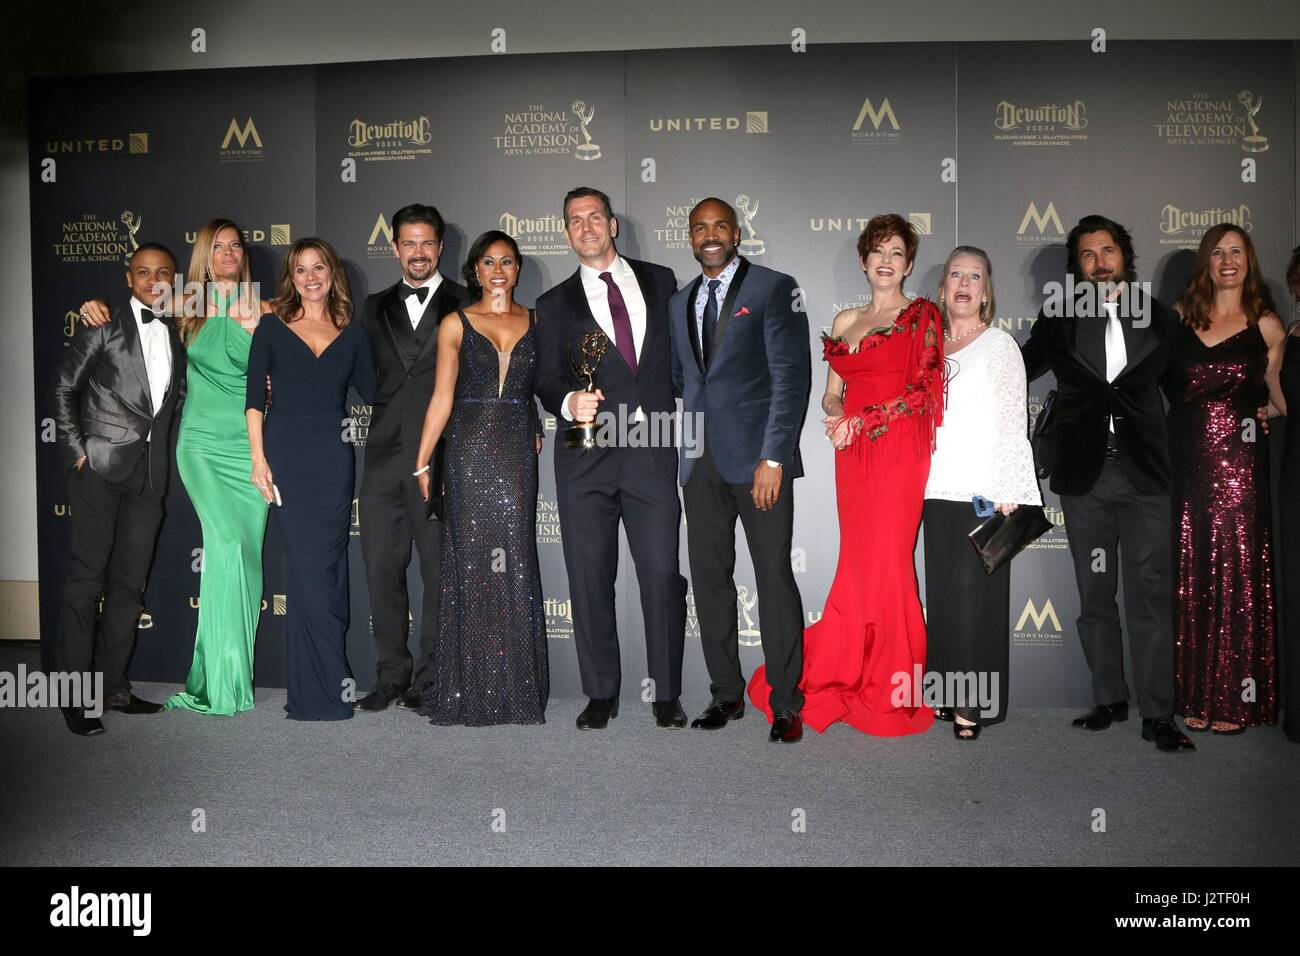 general hospital cast - photo #22